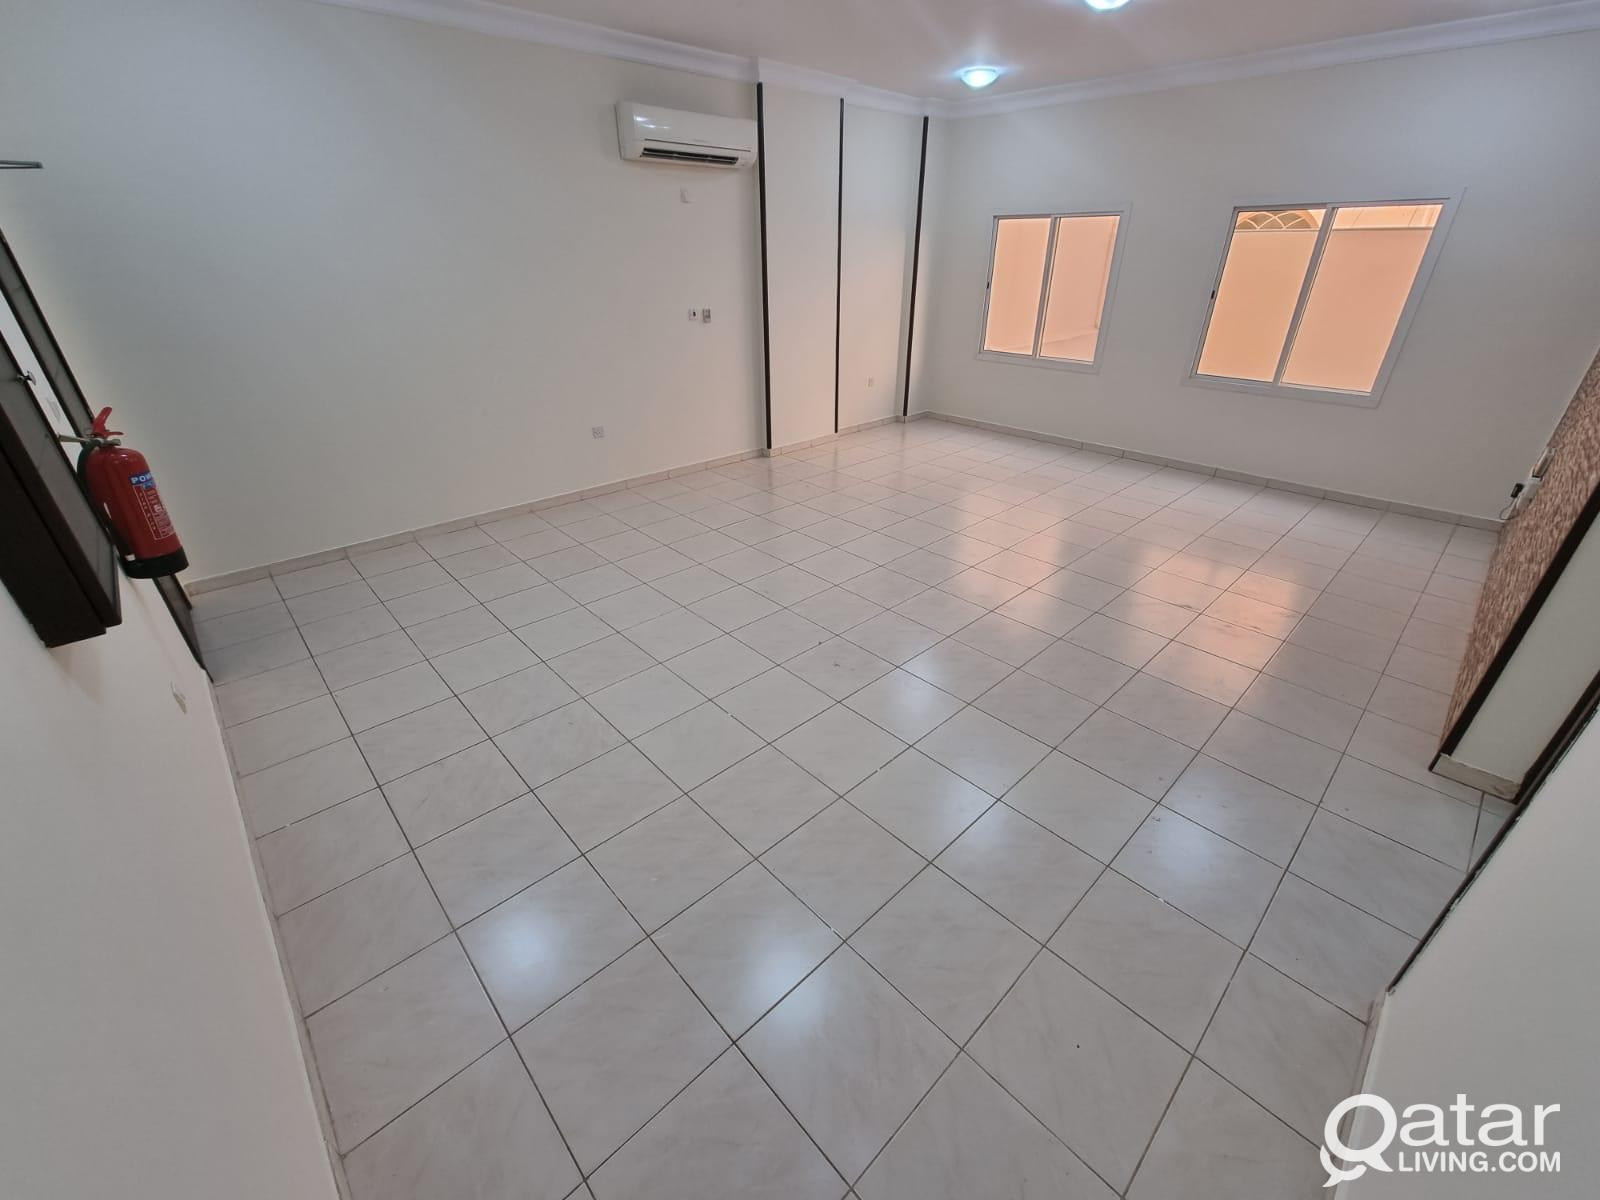 BEST CHOICE !! 2 bedroom for rent in Wakra (JW24)